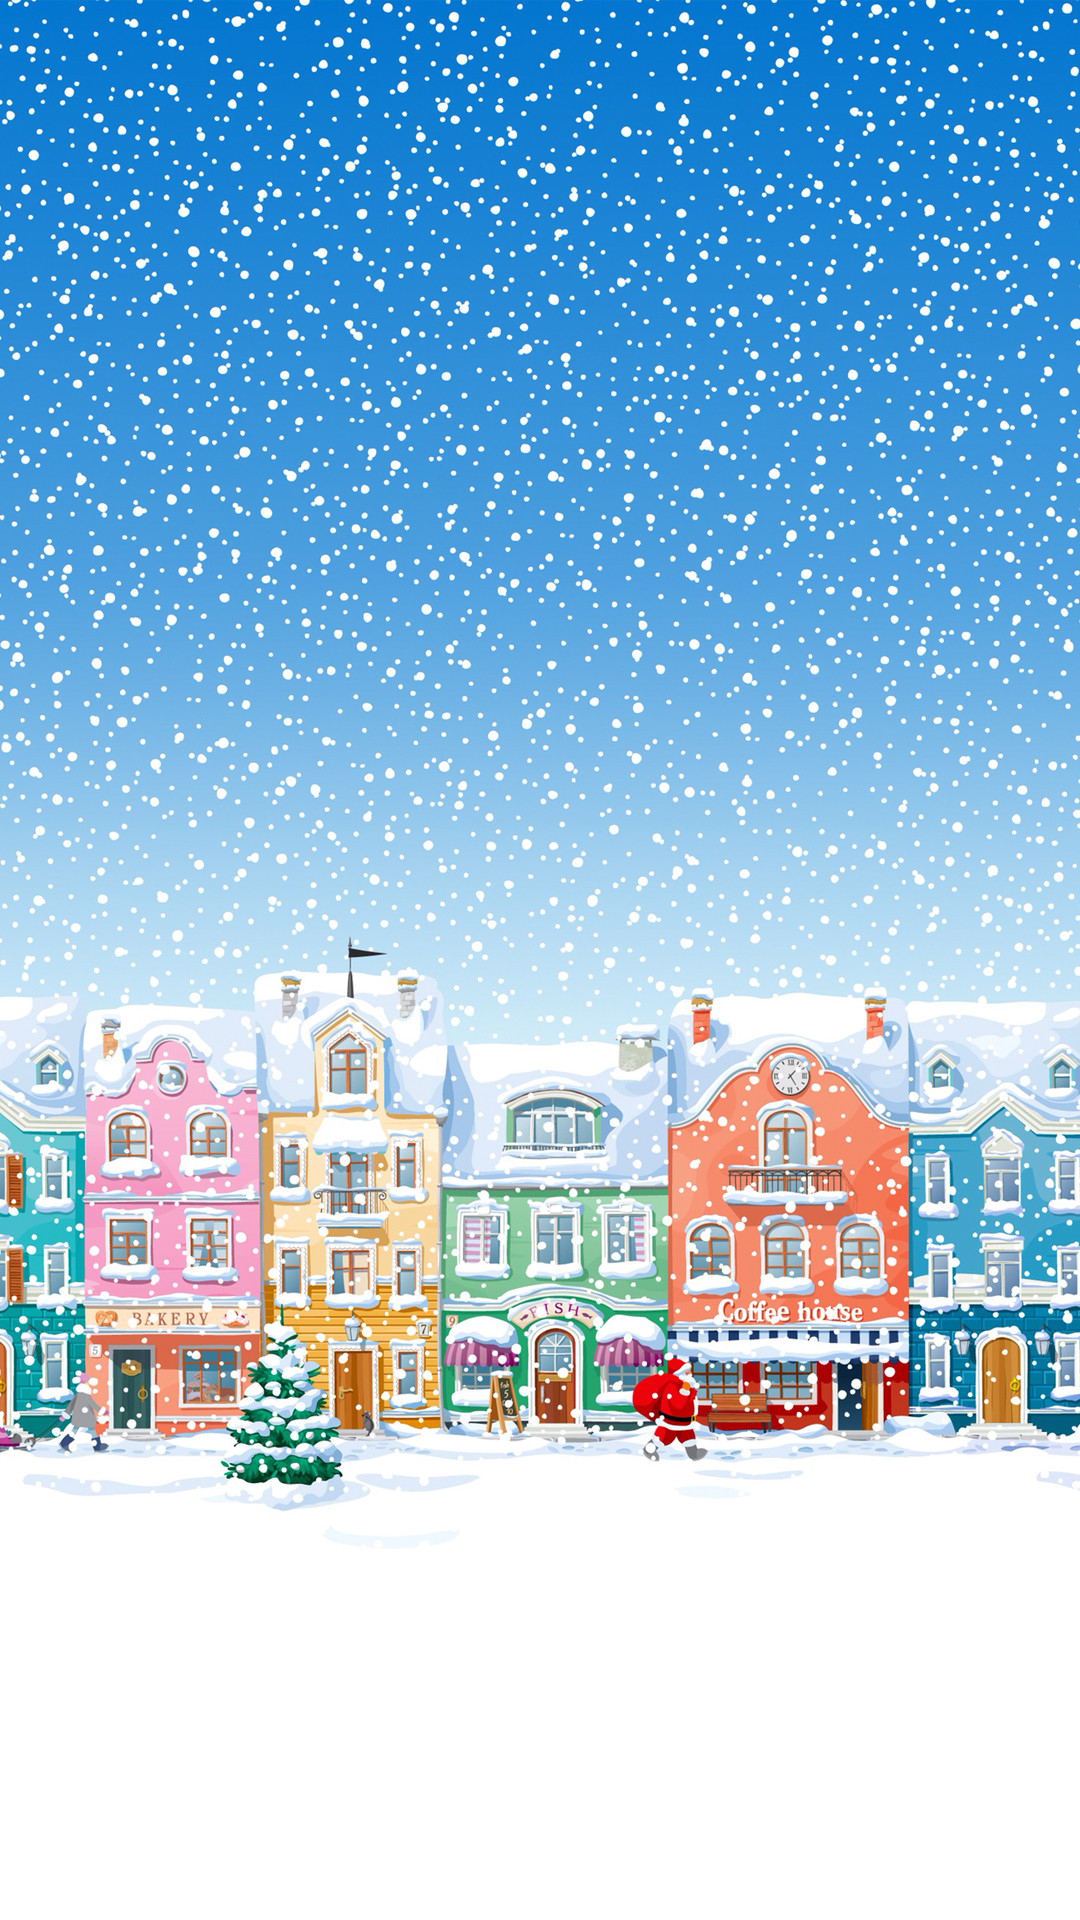 Cute Animated Wallpapers For Cell Phones Christmas Wallpaper And Screensavers 60 Images